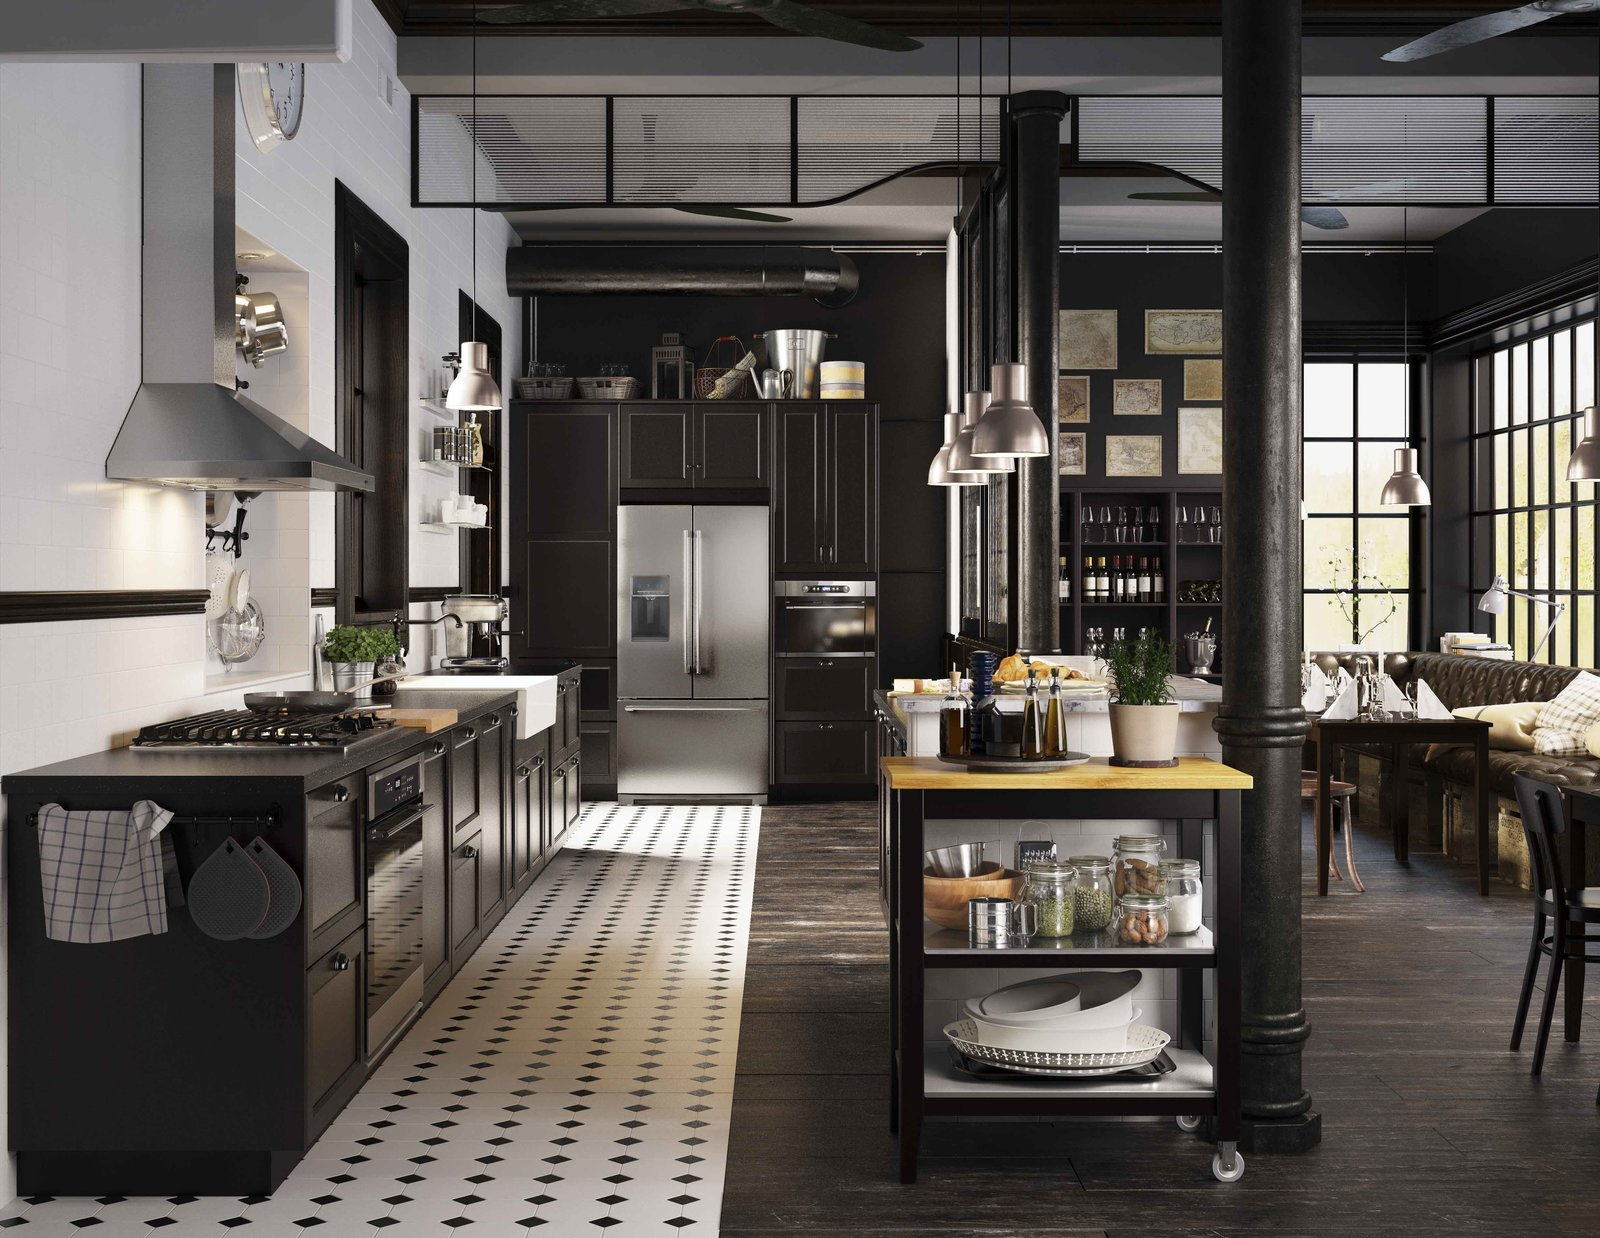 You Can Now Build Your Entire Kitchen with Ikea (Appliances Too!)